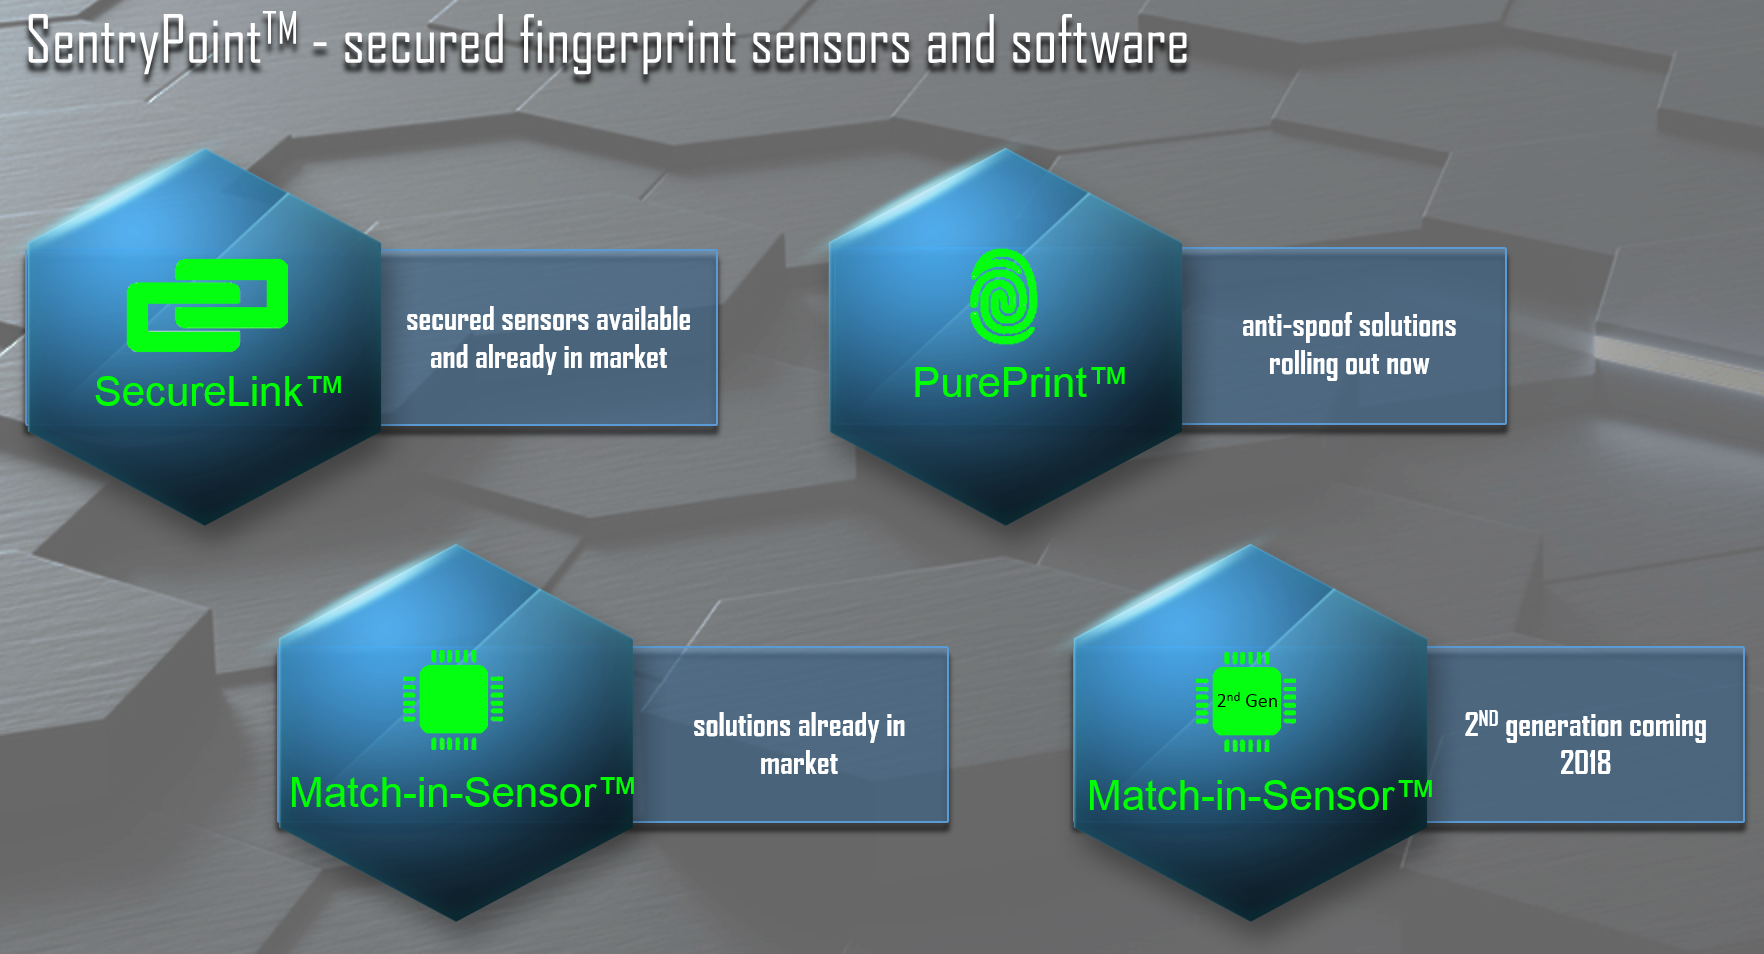 Synaptics Discusses Fingerprint Security and the Need For End-to-End